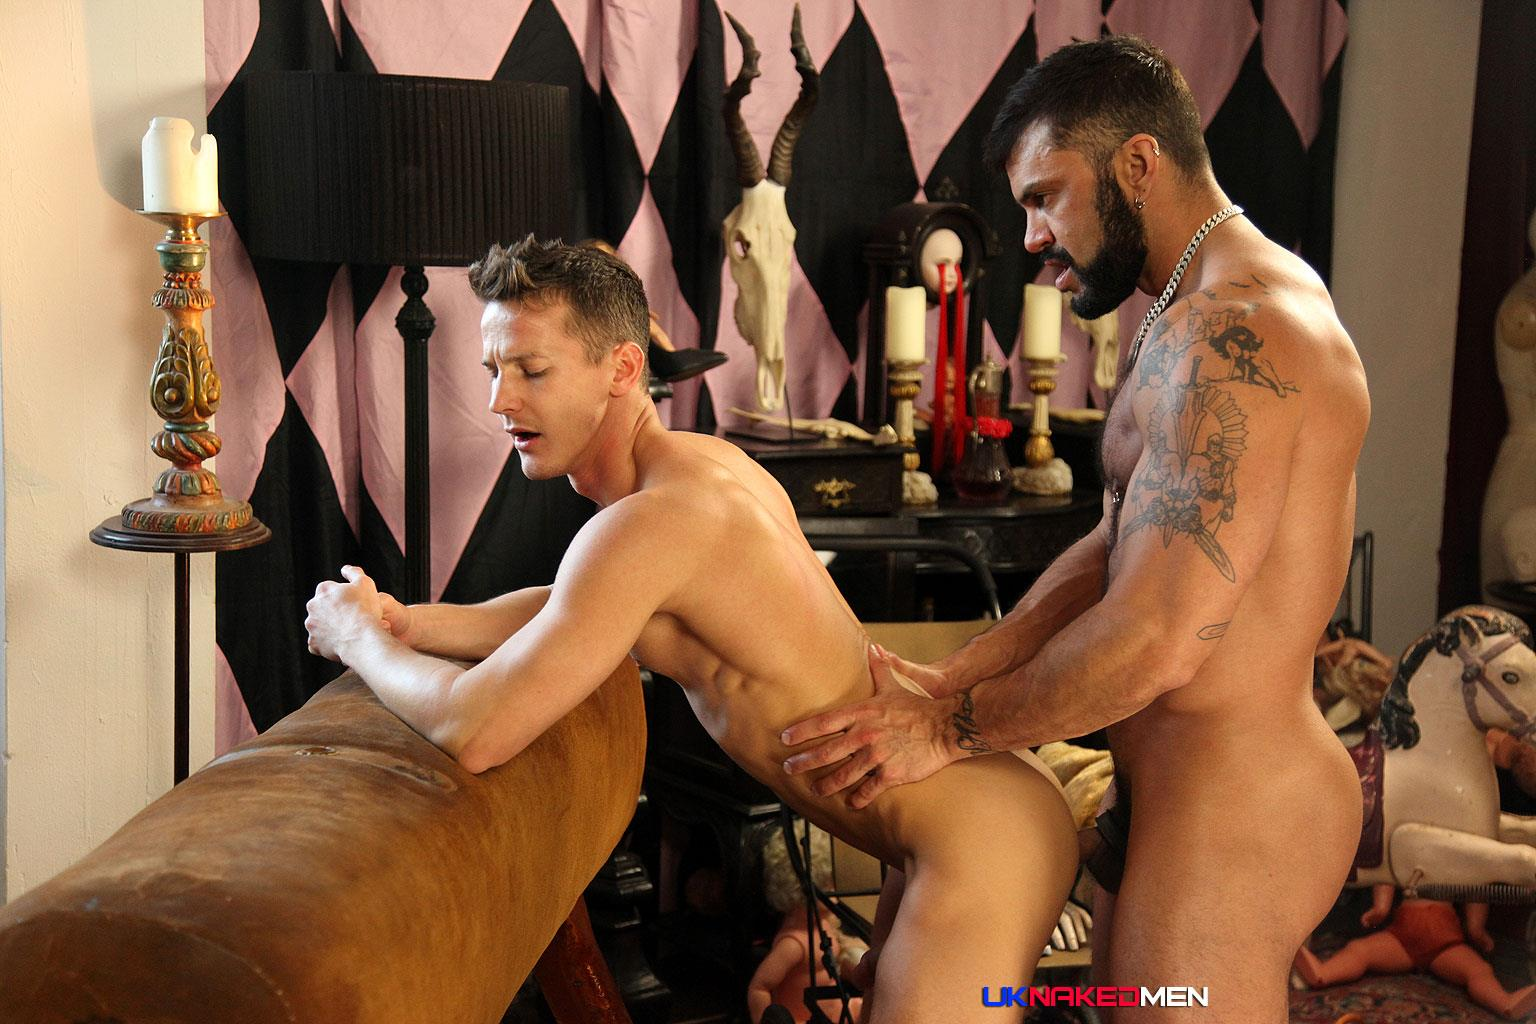 UK Naked Men Rogan Richards Darius Ferdynand Huge Uncut Cocks Fucking Amateur Gay Porn 22 Hairy Muscle Arab Stud With A Big Uncut Cock Fucks A Slim Muscle Ass